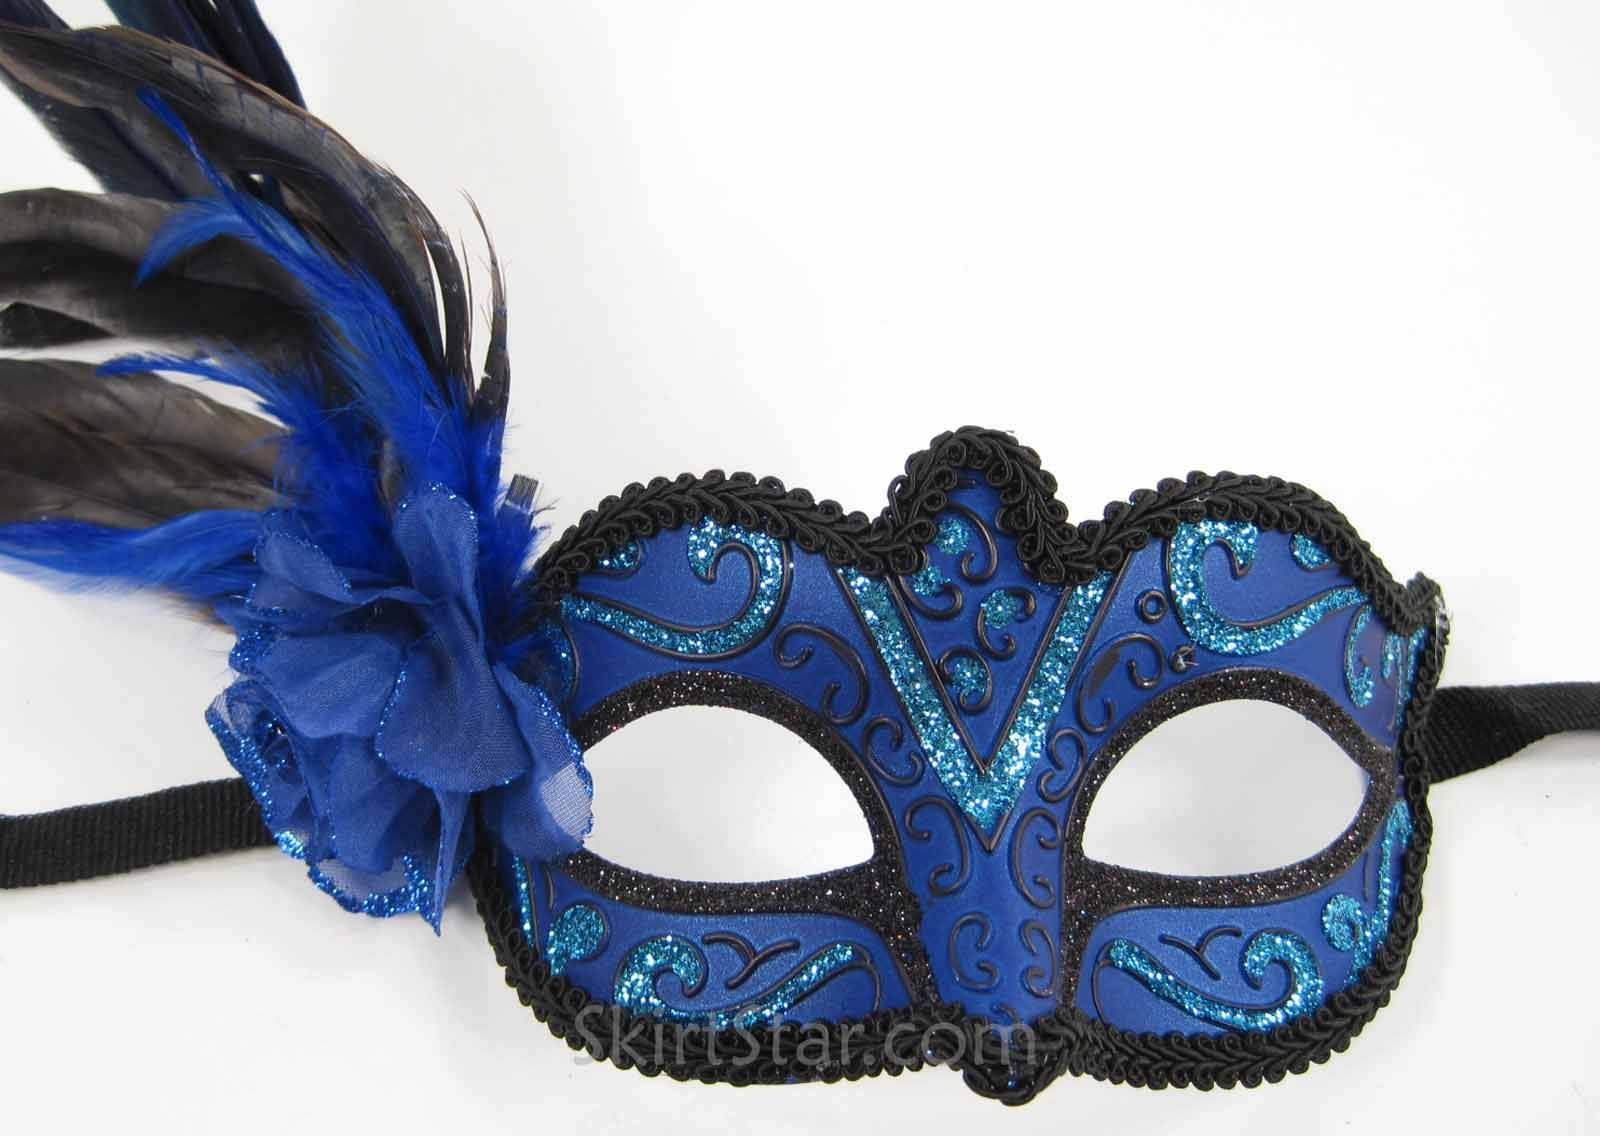 Plain Venetian Masks To Decorate Beauteous Blue Masquerade Masks For Women With Feathers  Masquerade Mask 2018